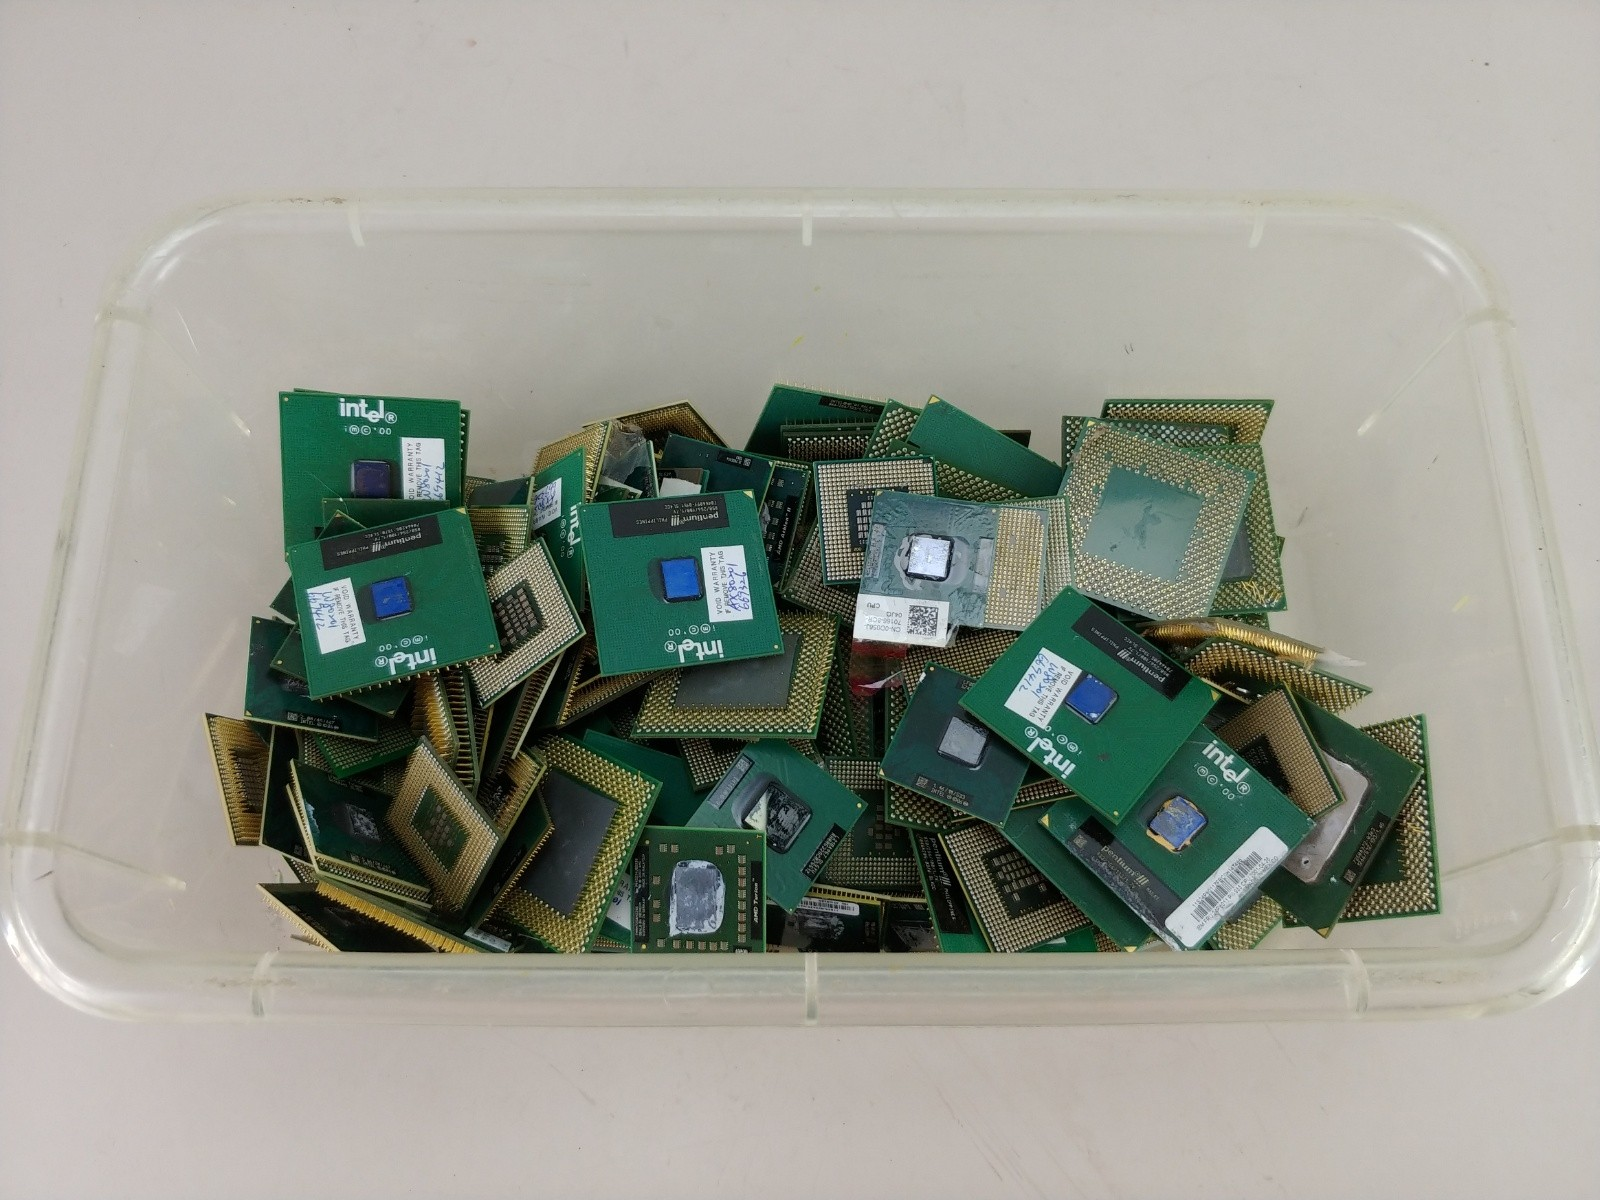 3 Pounds Fiber Gold Pin No Metal Top CPU Chips For Scrap Recovery